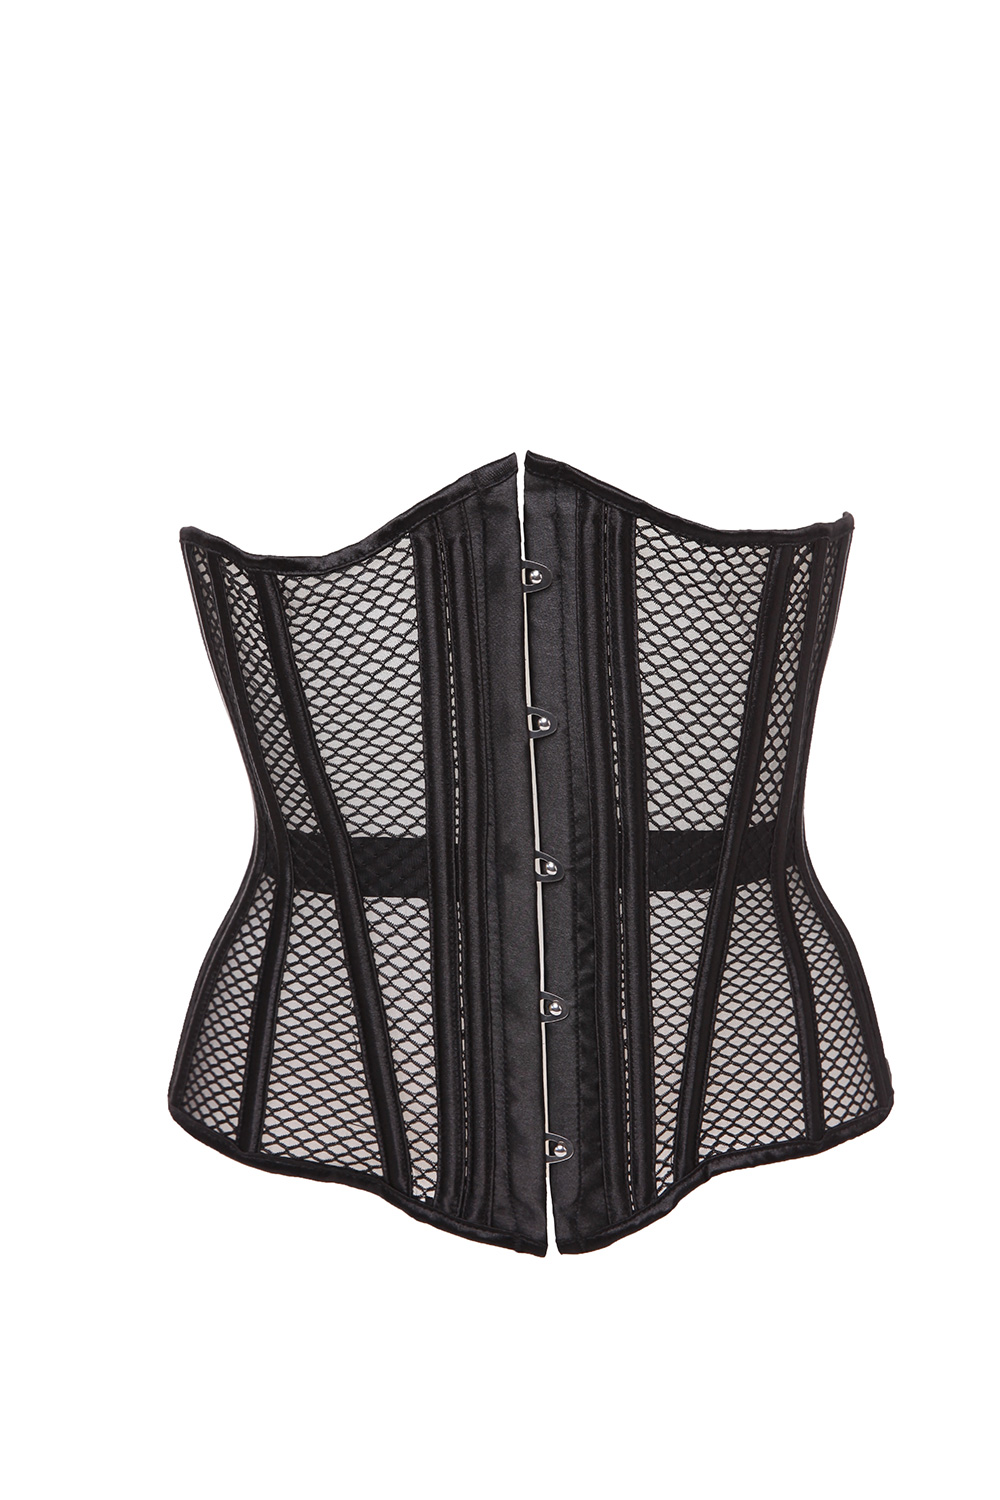 Summer Women Body Shaper   Bustiers   &   Corsets   Mesh Net Intimates Shapewear Steel Boned Hollow Out   Corset   QF931